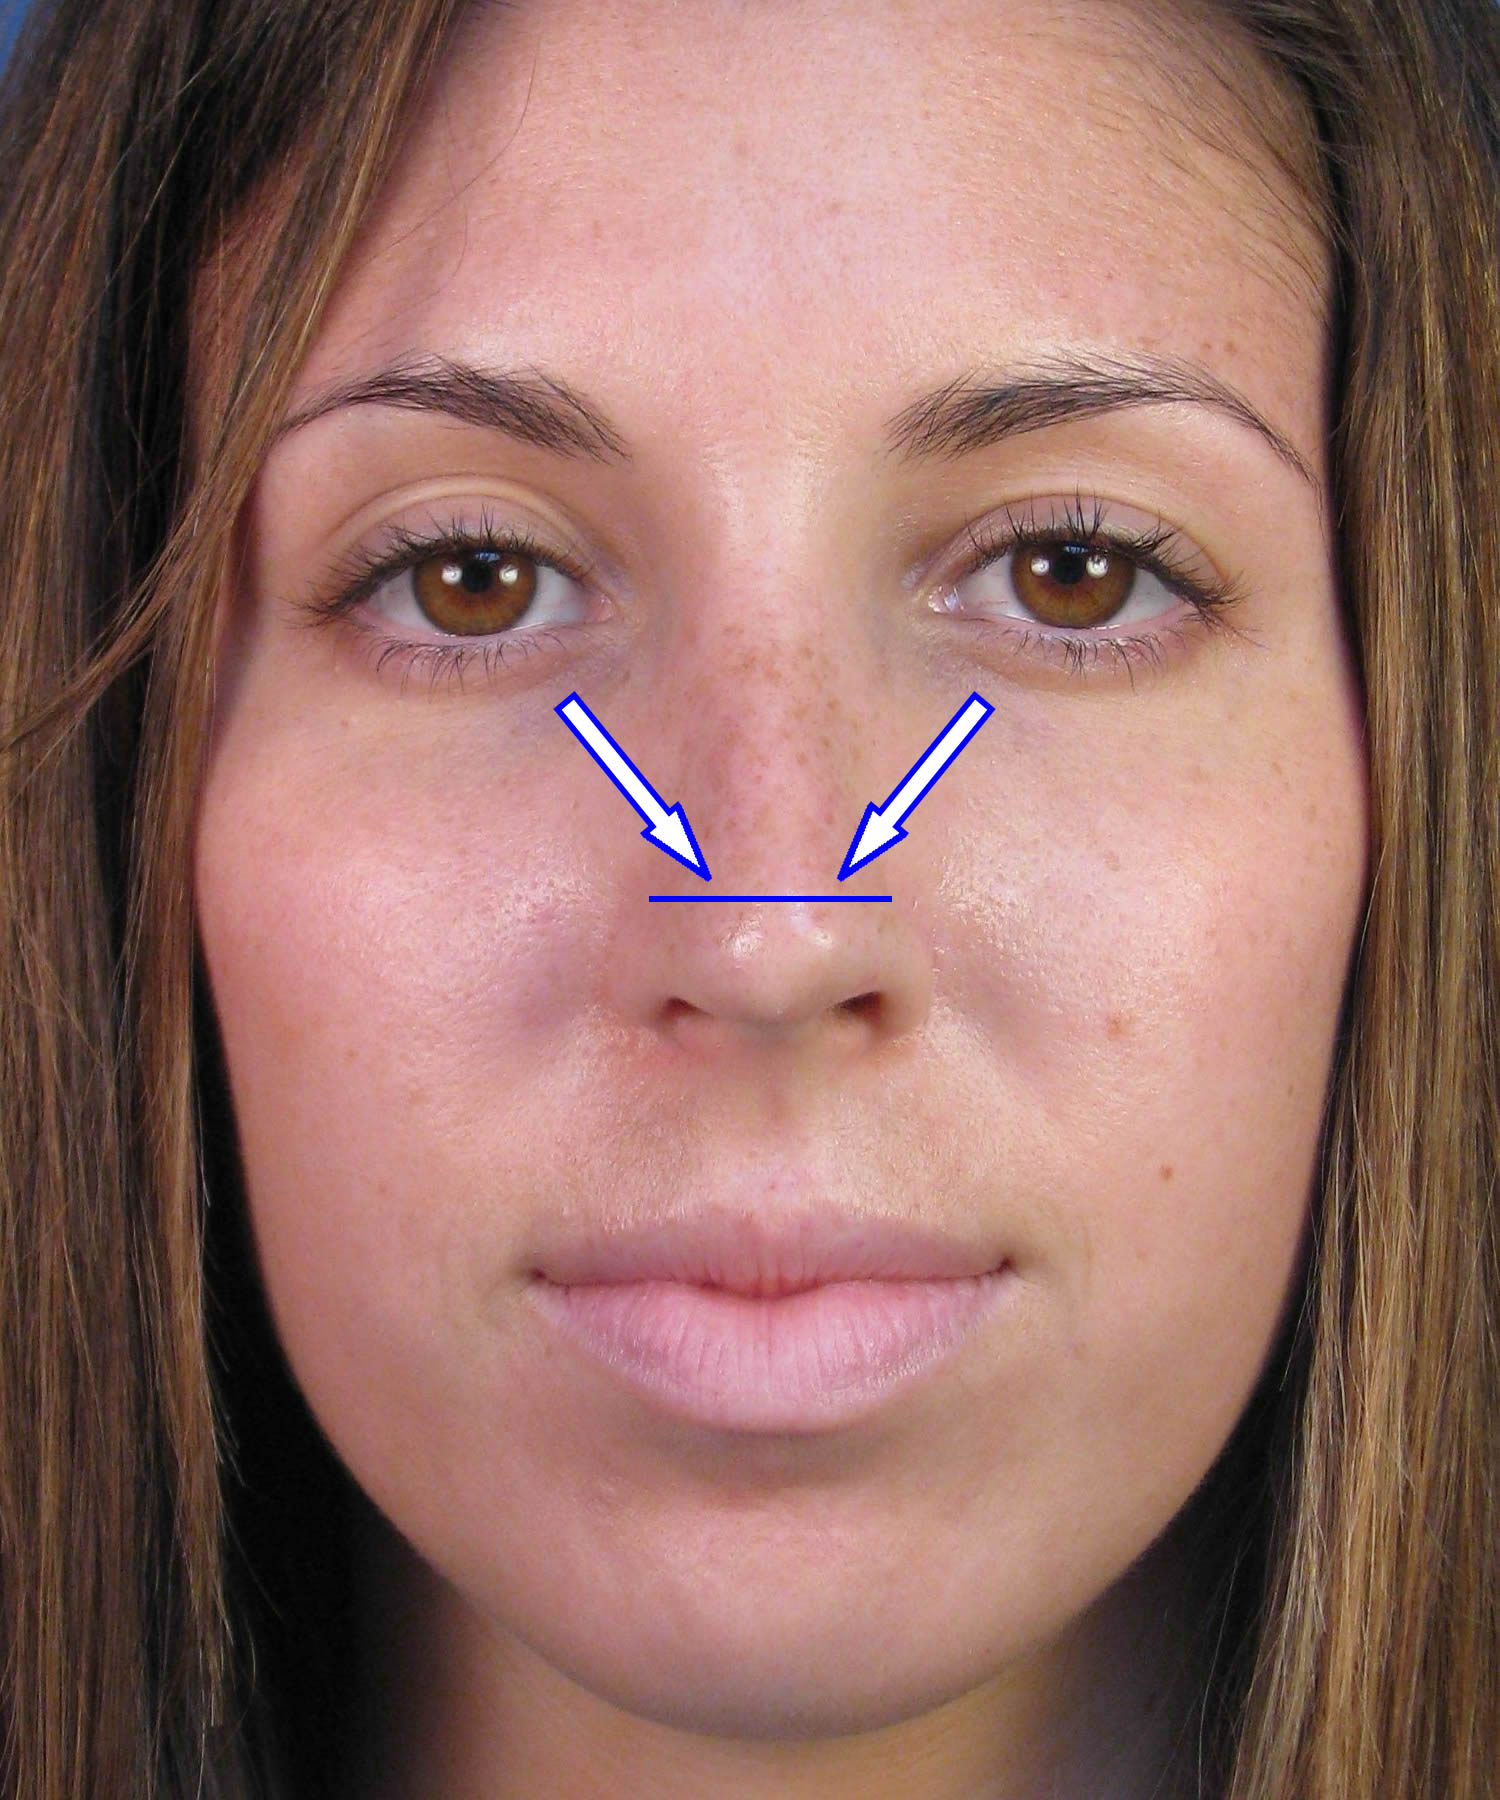 Rhinoplasty in San Diego - Tip Rhinoplasty by Dr. John ...